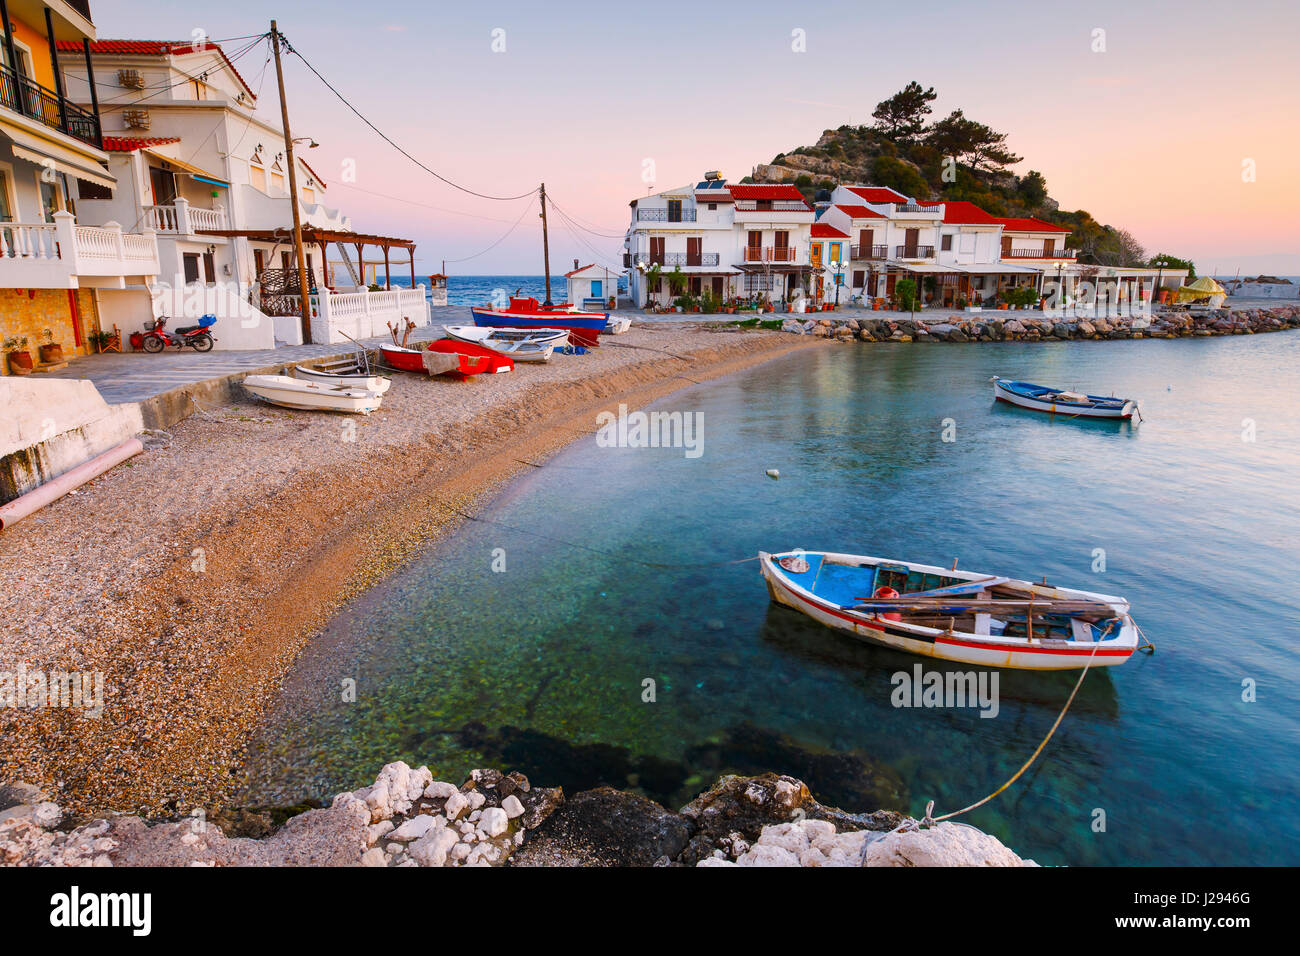 Village de Kokkari pittoresque sur l'île de Samos, Grèce. Photo Stock